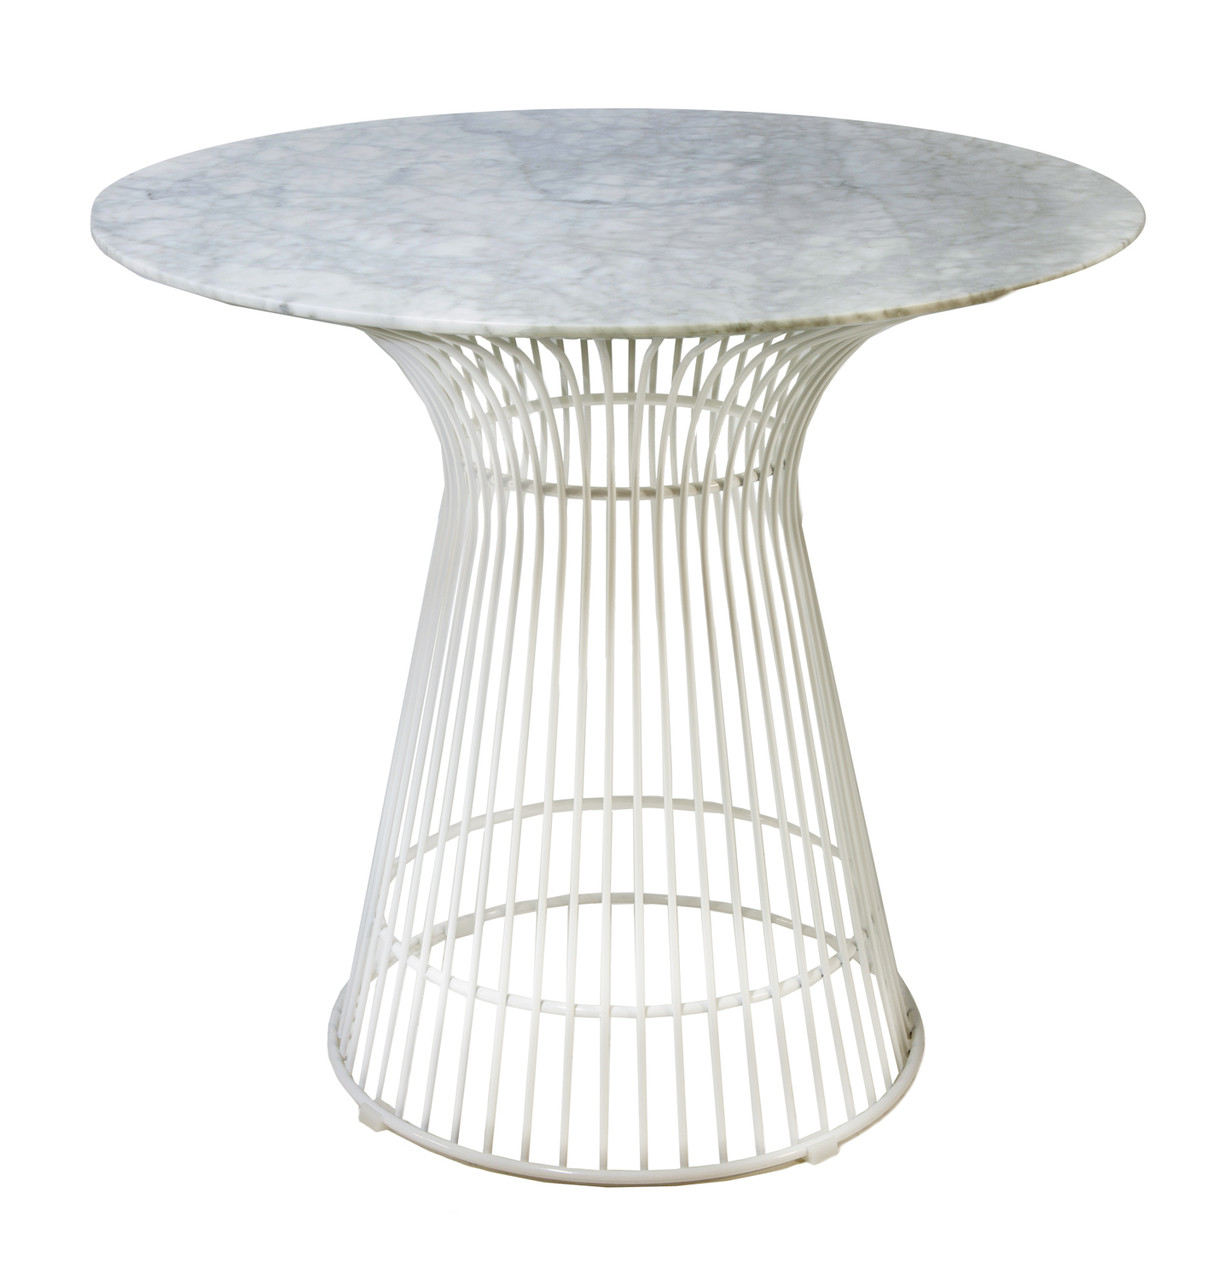 Replica warren platner table replica warren platner for Table warren platner